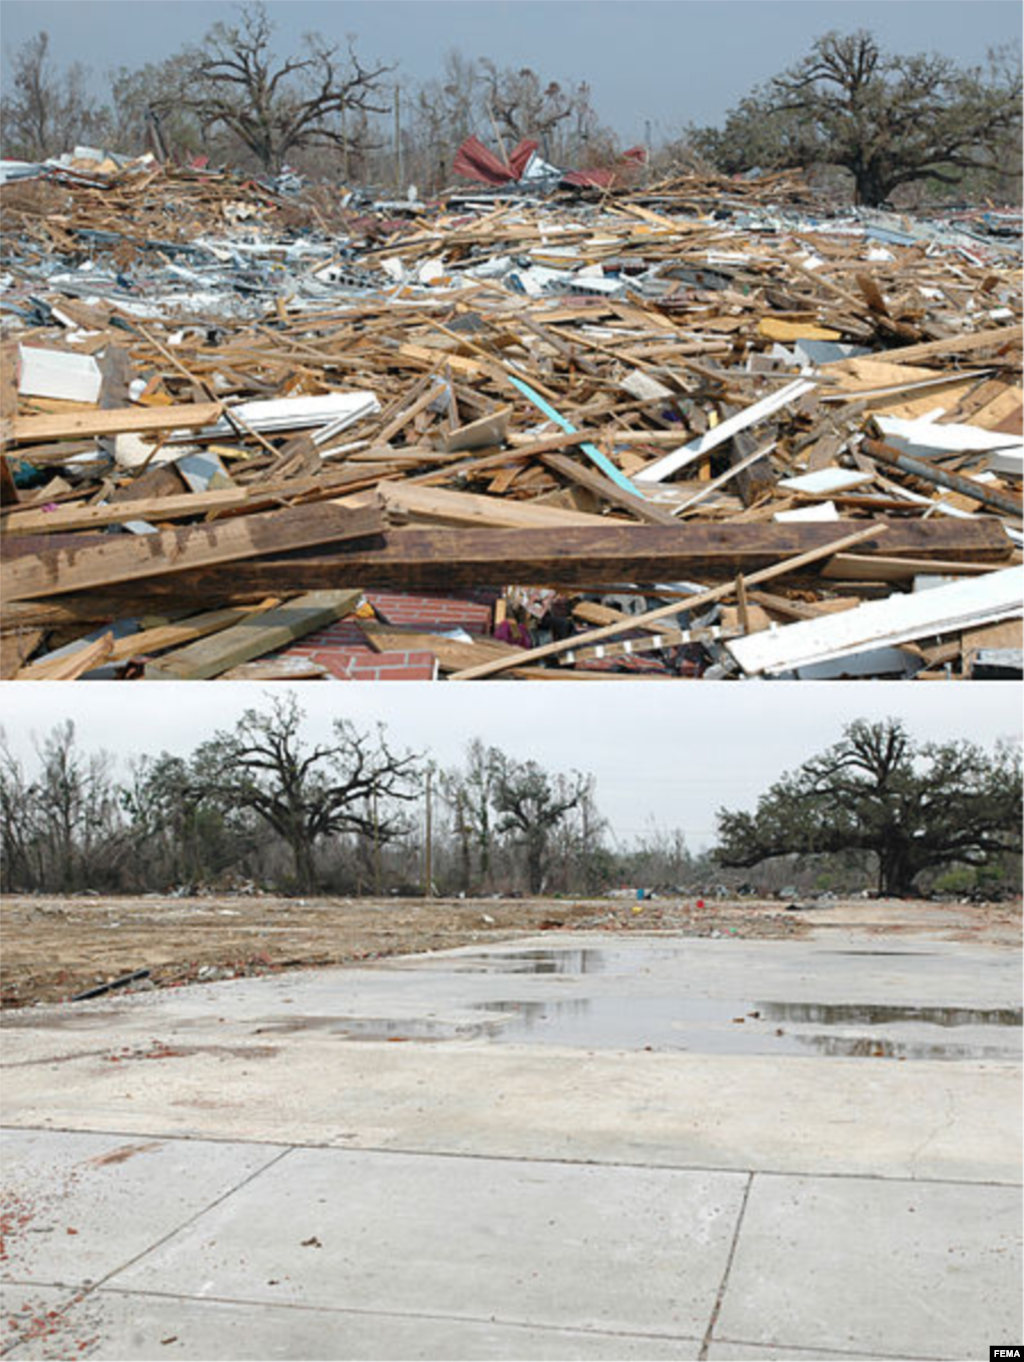 The debris from Pass Christian Middle School before and after cleanup. The school was destroyed by Hurricane Katrina, Pass Christian, Mississippi, Sept. 14, 2005 and Dec. 6, 2005. (Mark Wolfe/FEMA)